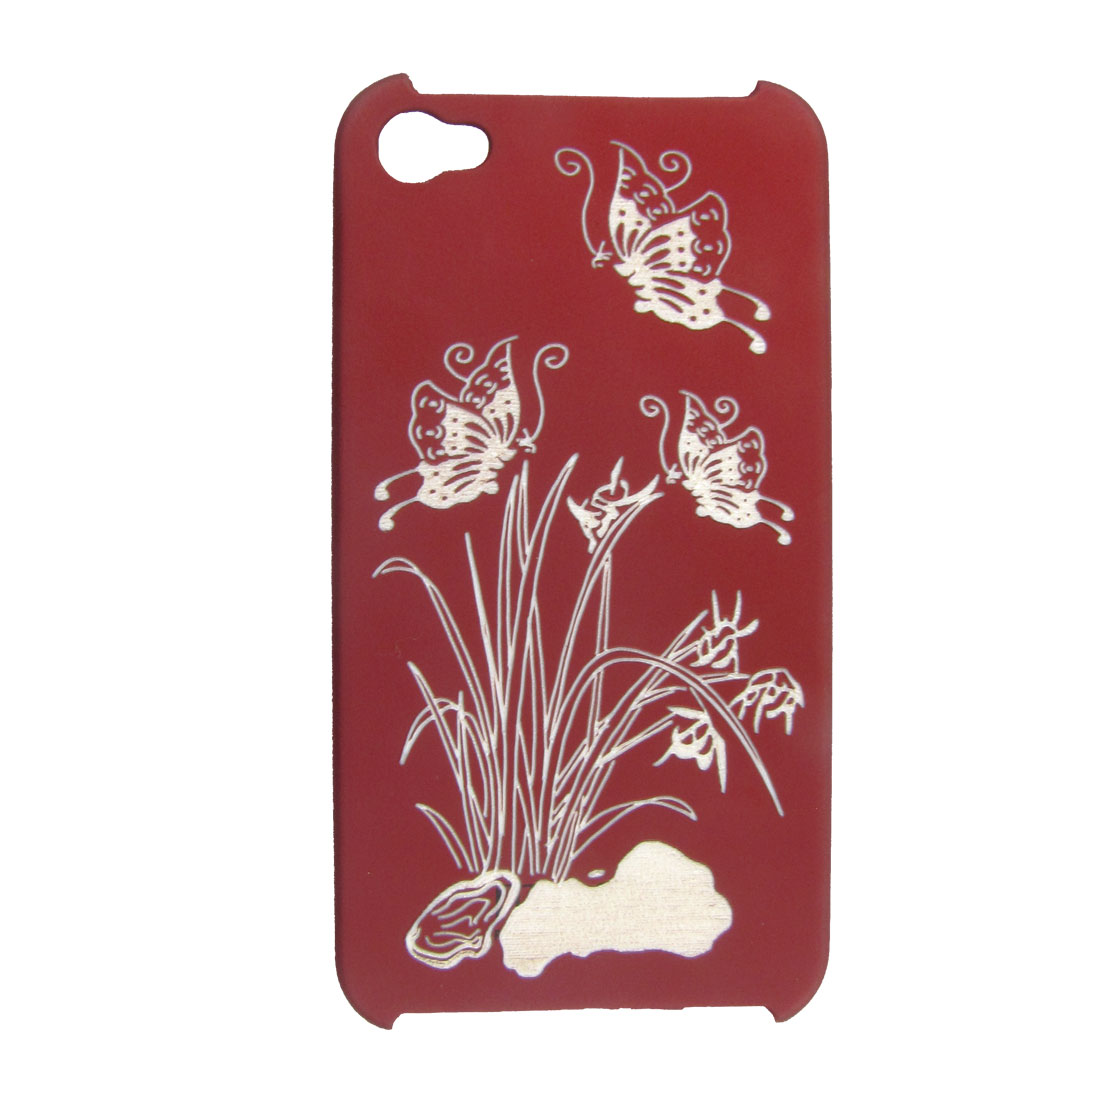 Burgundy Rubberized Plastic Laser-cut Floral Butterfly Back Cover for iPhone 4 4G 4GS